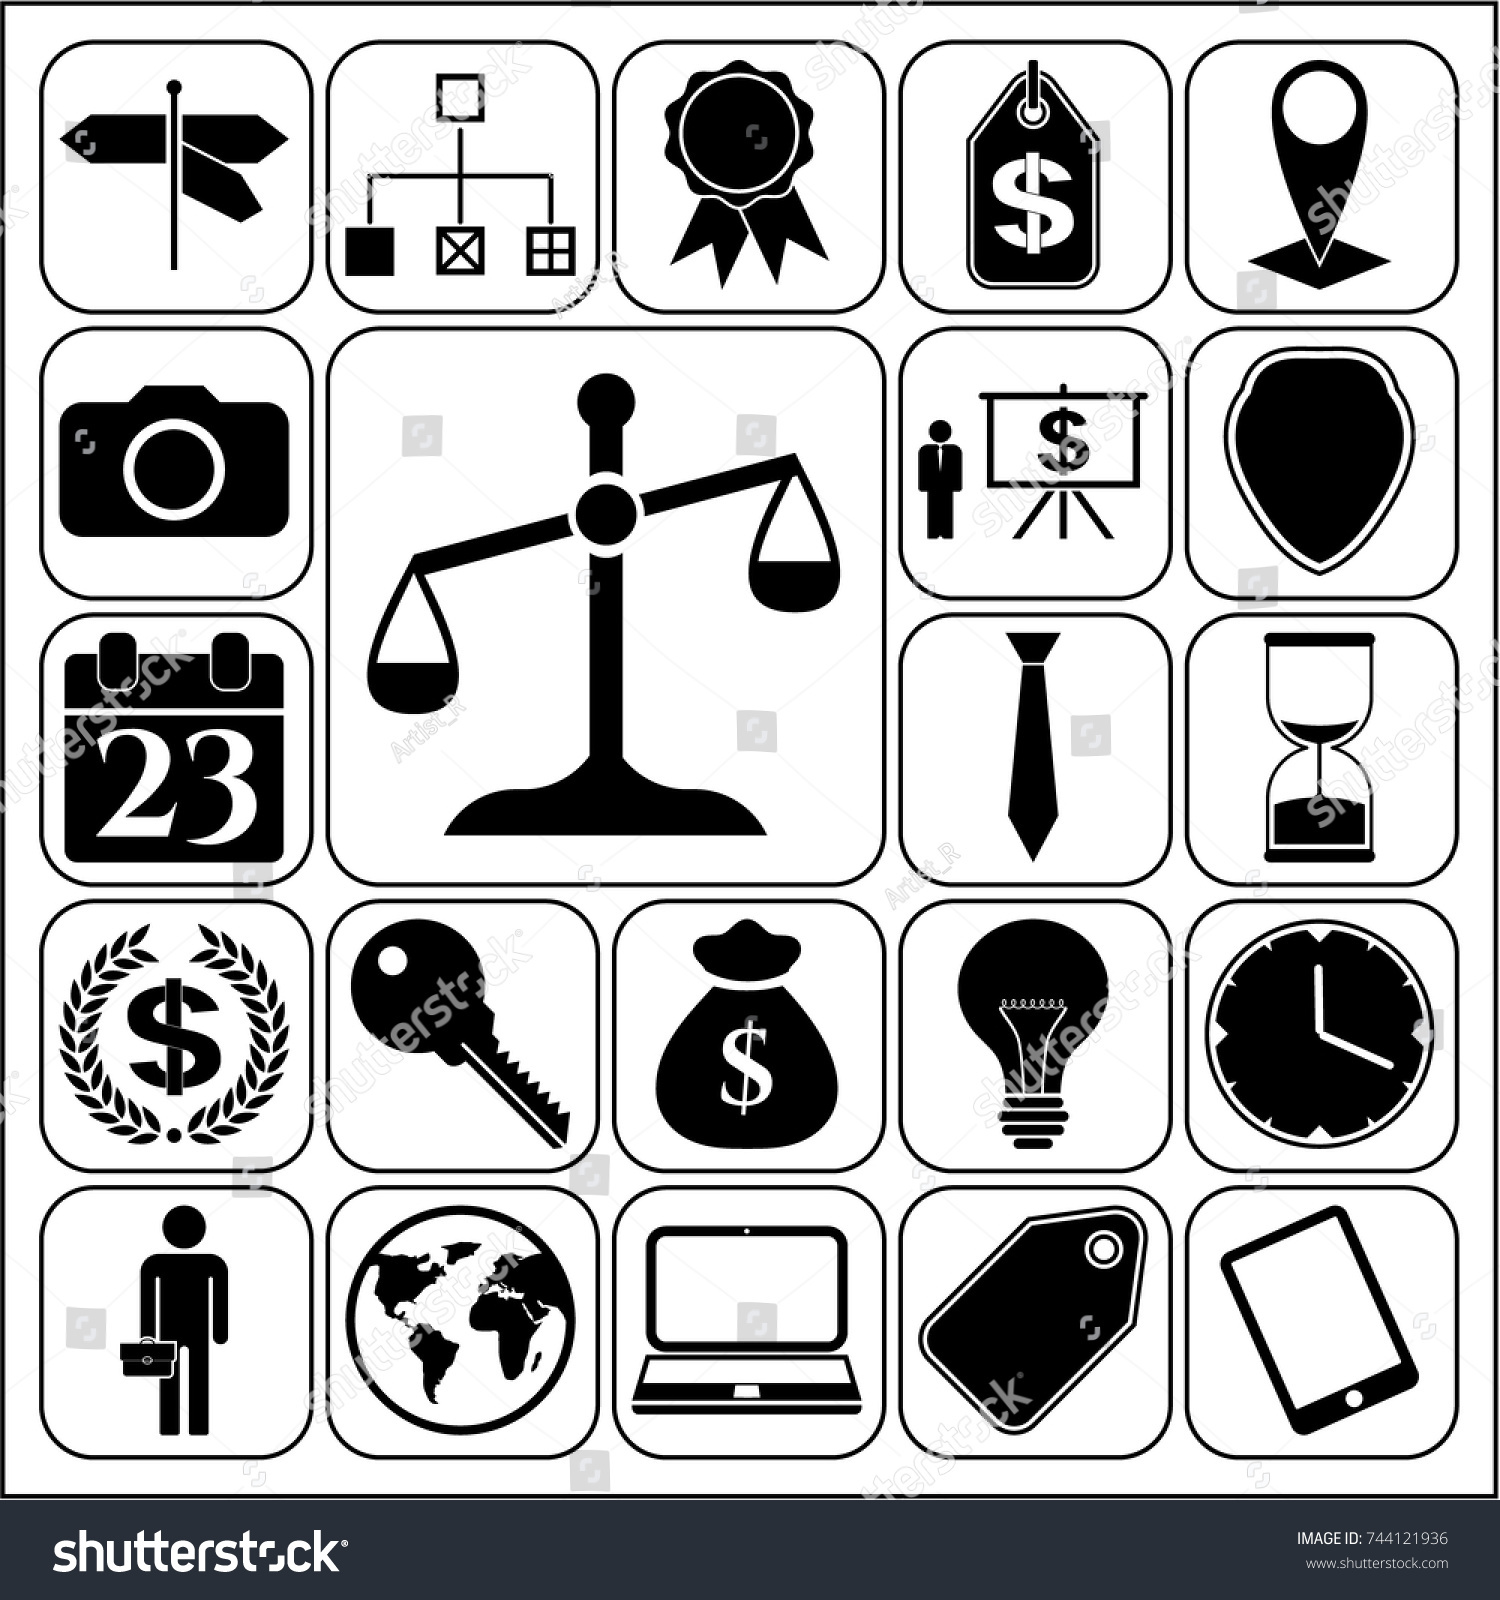 Set 22 Business Icons Symbols Collection Stock Vector 744121936